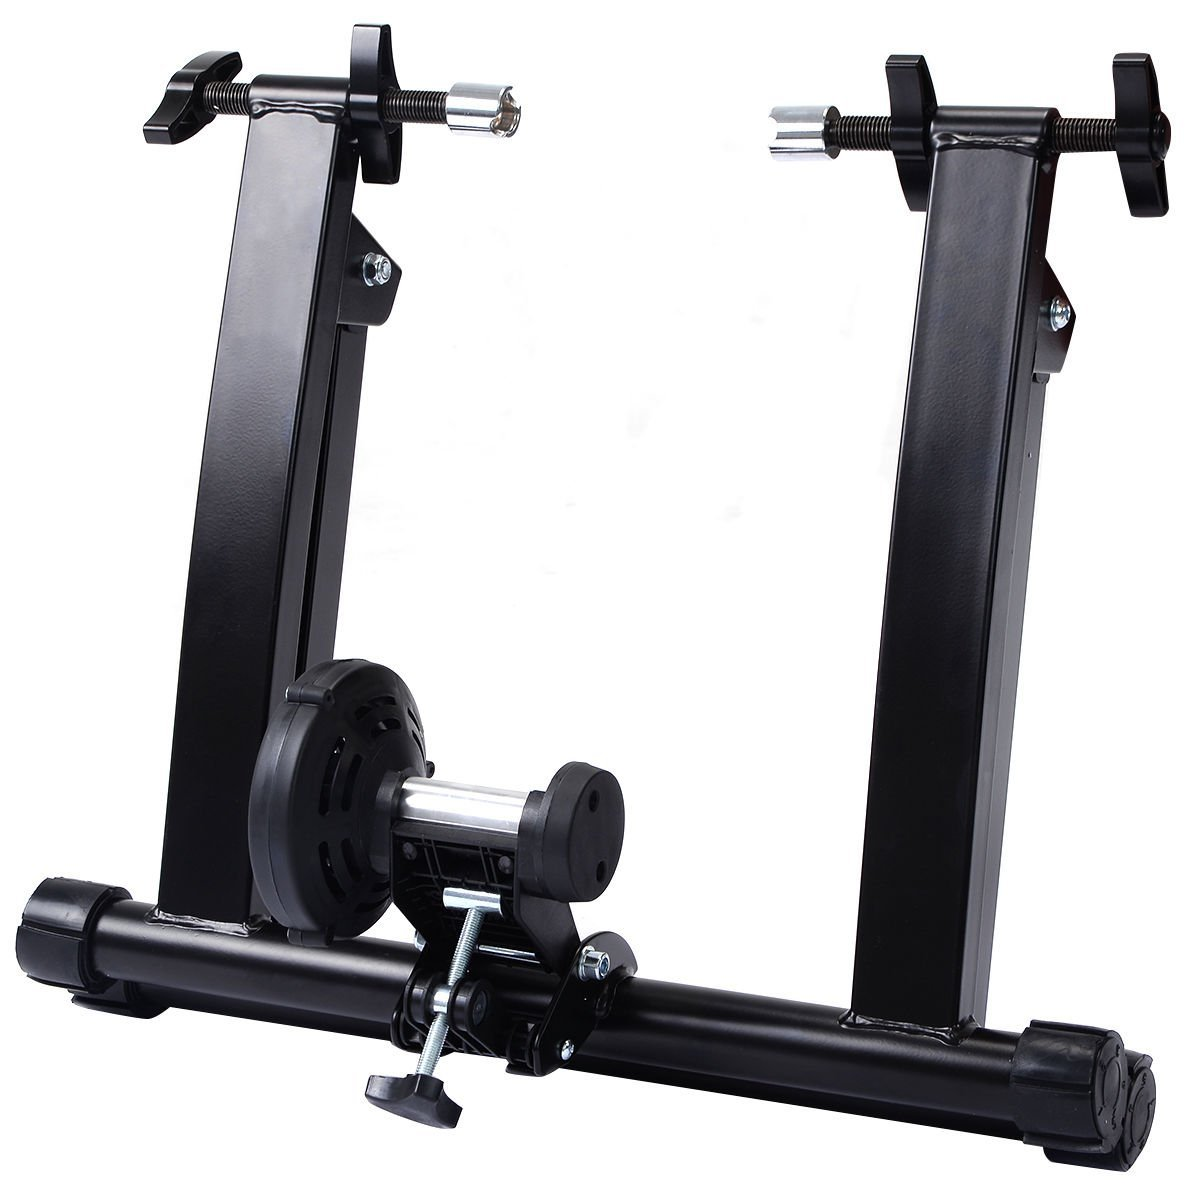 Goplus Portable Magnet Steel Bike/Bicycle Indoor Exercise Trainer Stand by Goplus (Image #2)